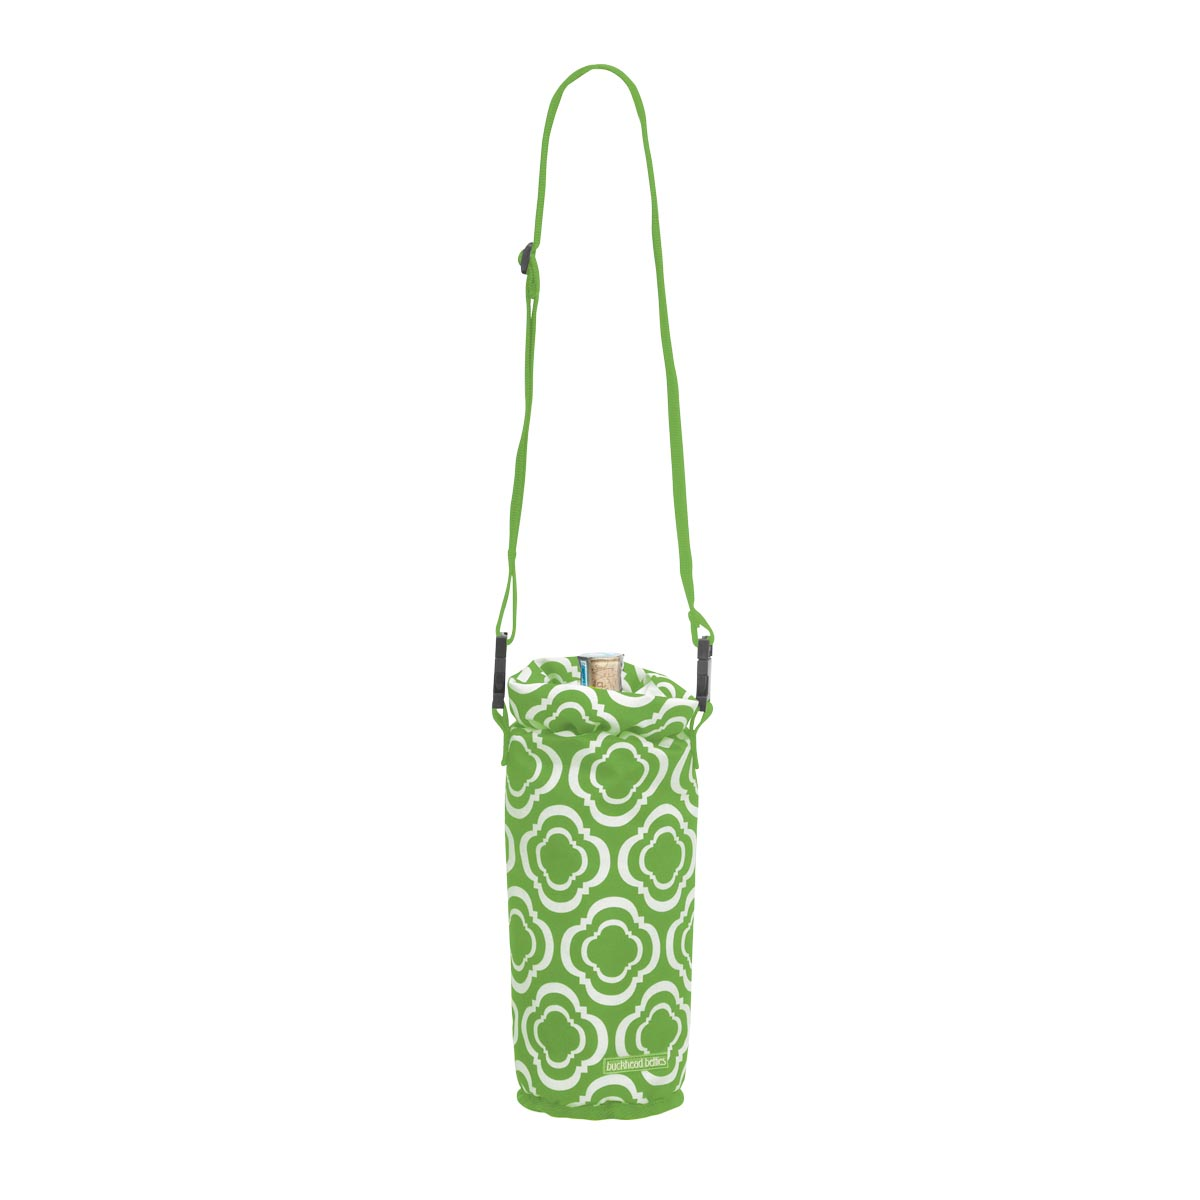 green insulated wine bag